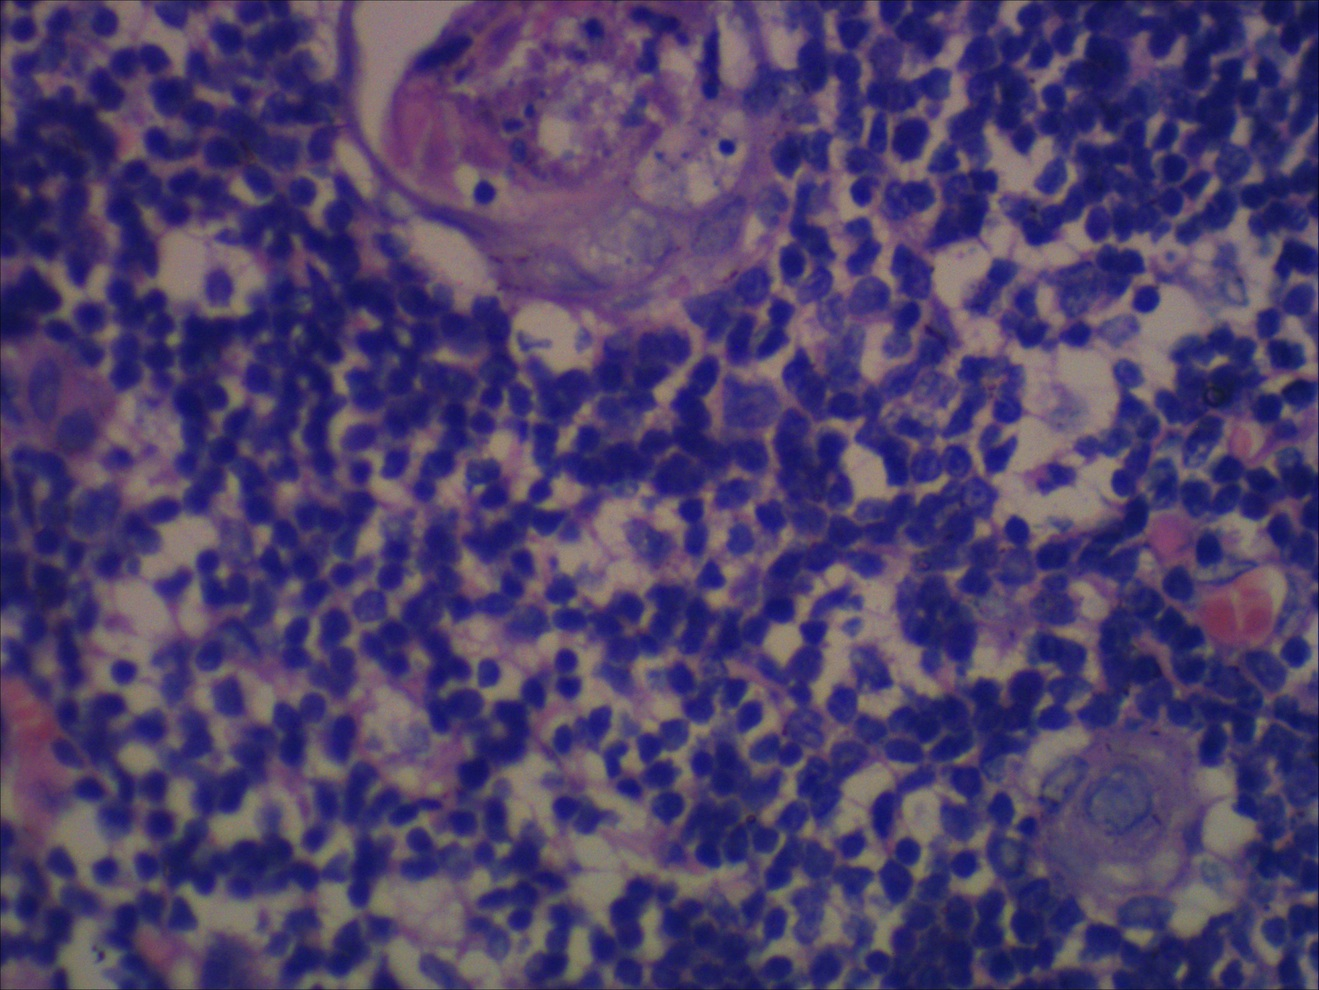 Search results for Epidermoid Cyst Pathology Outlines